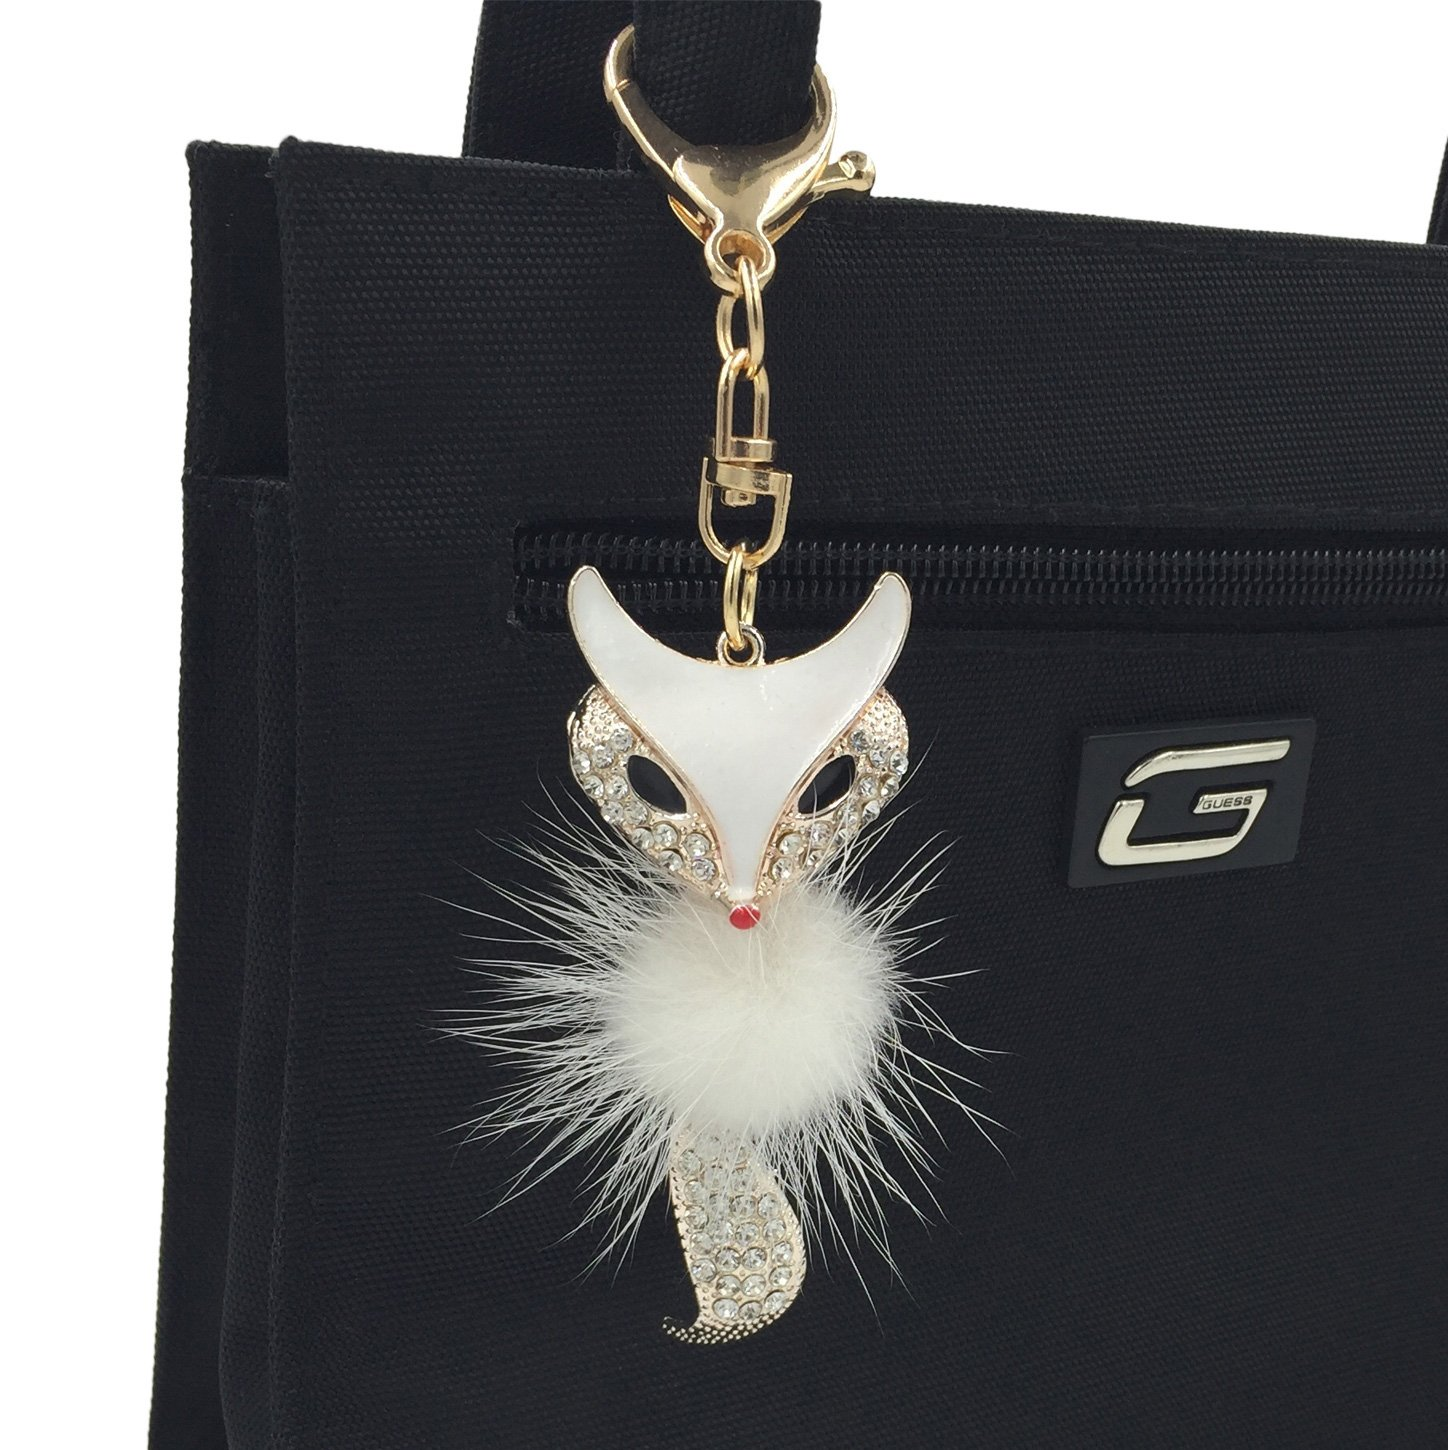 880d132146d6 Amazon.com  Pardao Beautiful Cute Fox pom pom fur ball Keychain - best gift  for girls women girlfriend or sister - Cool Bag Charm   Fashion Accessory   ...